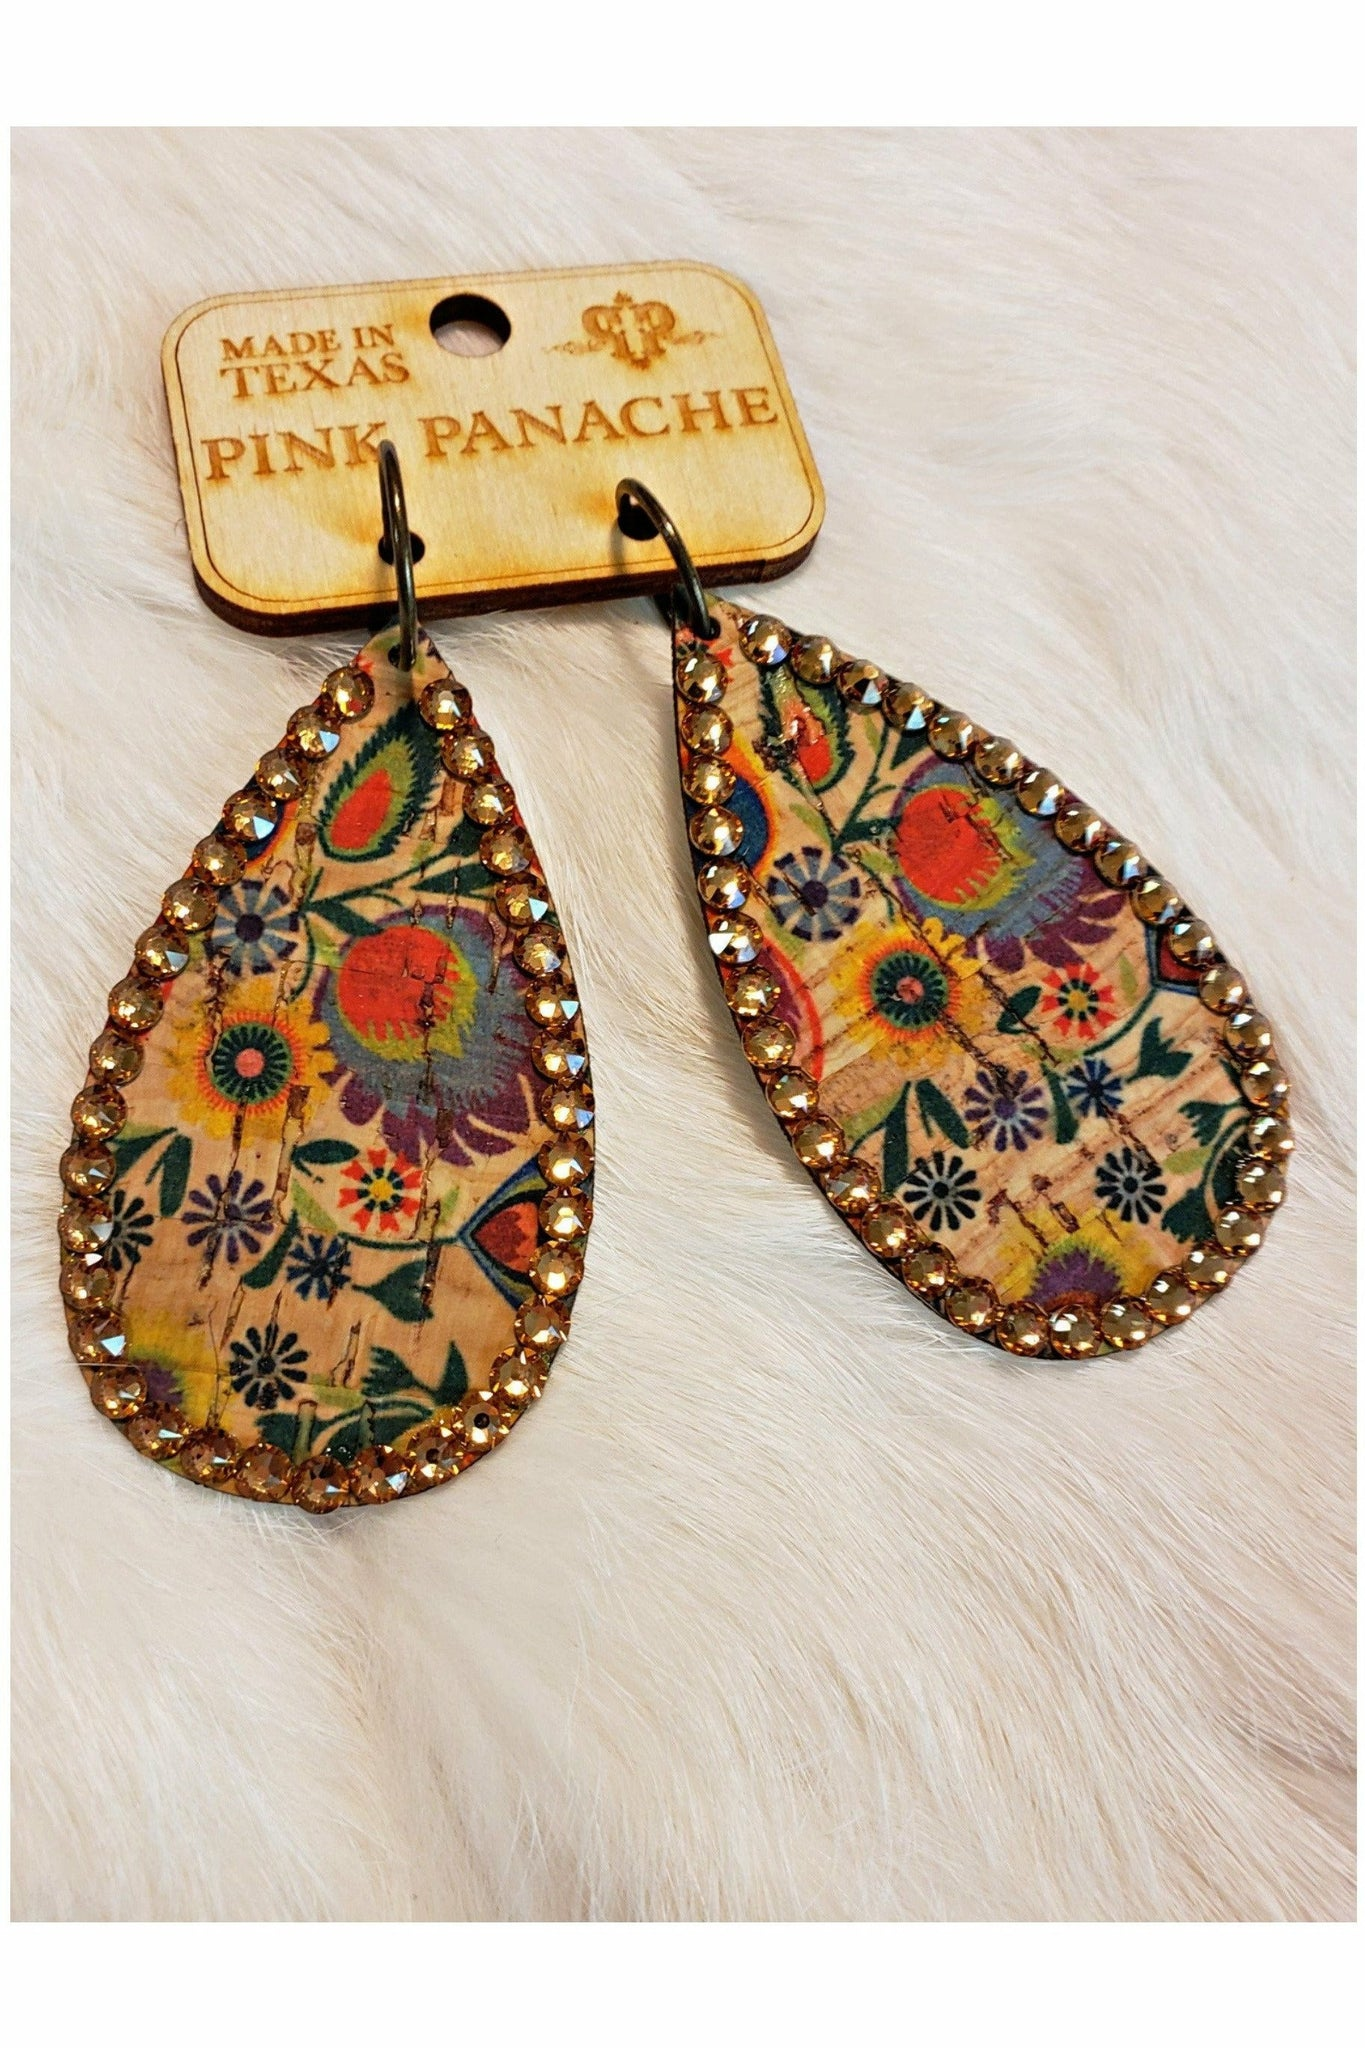 Pink Panache JewelryNATURAL FLORAL TEARDROP LIGHT COLORADO CRYSTAL EARRING